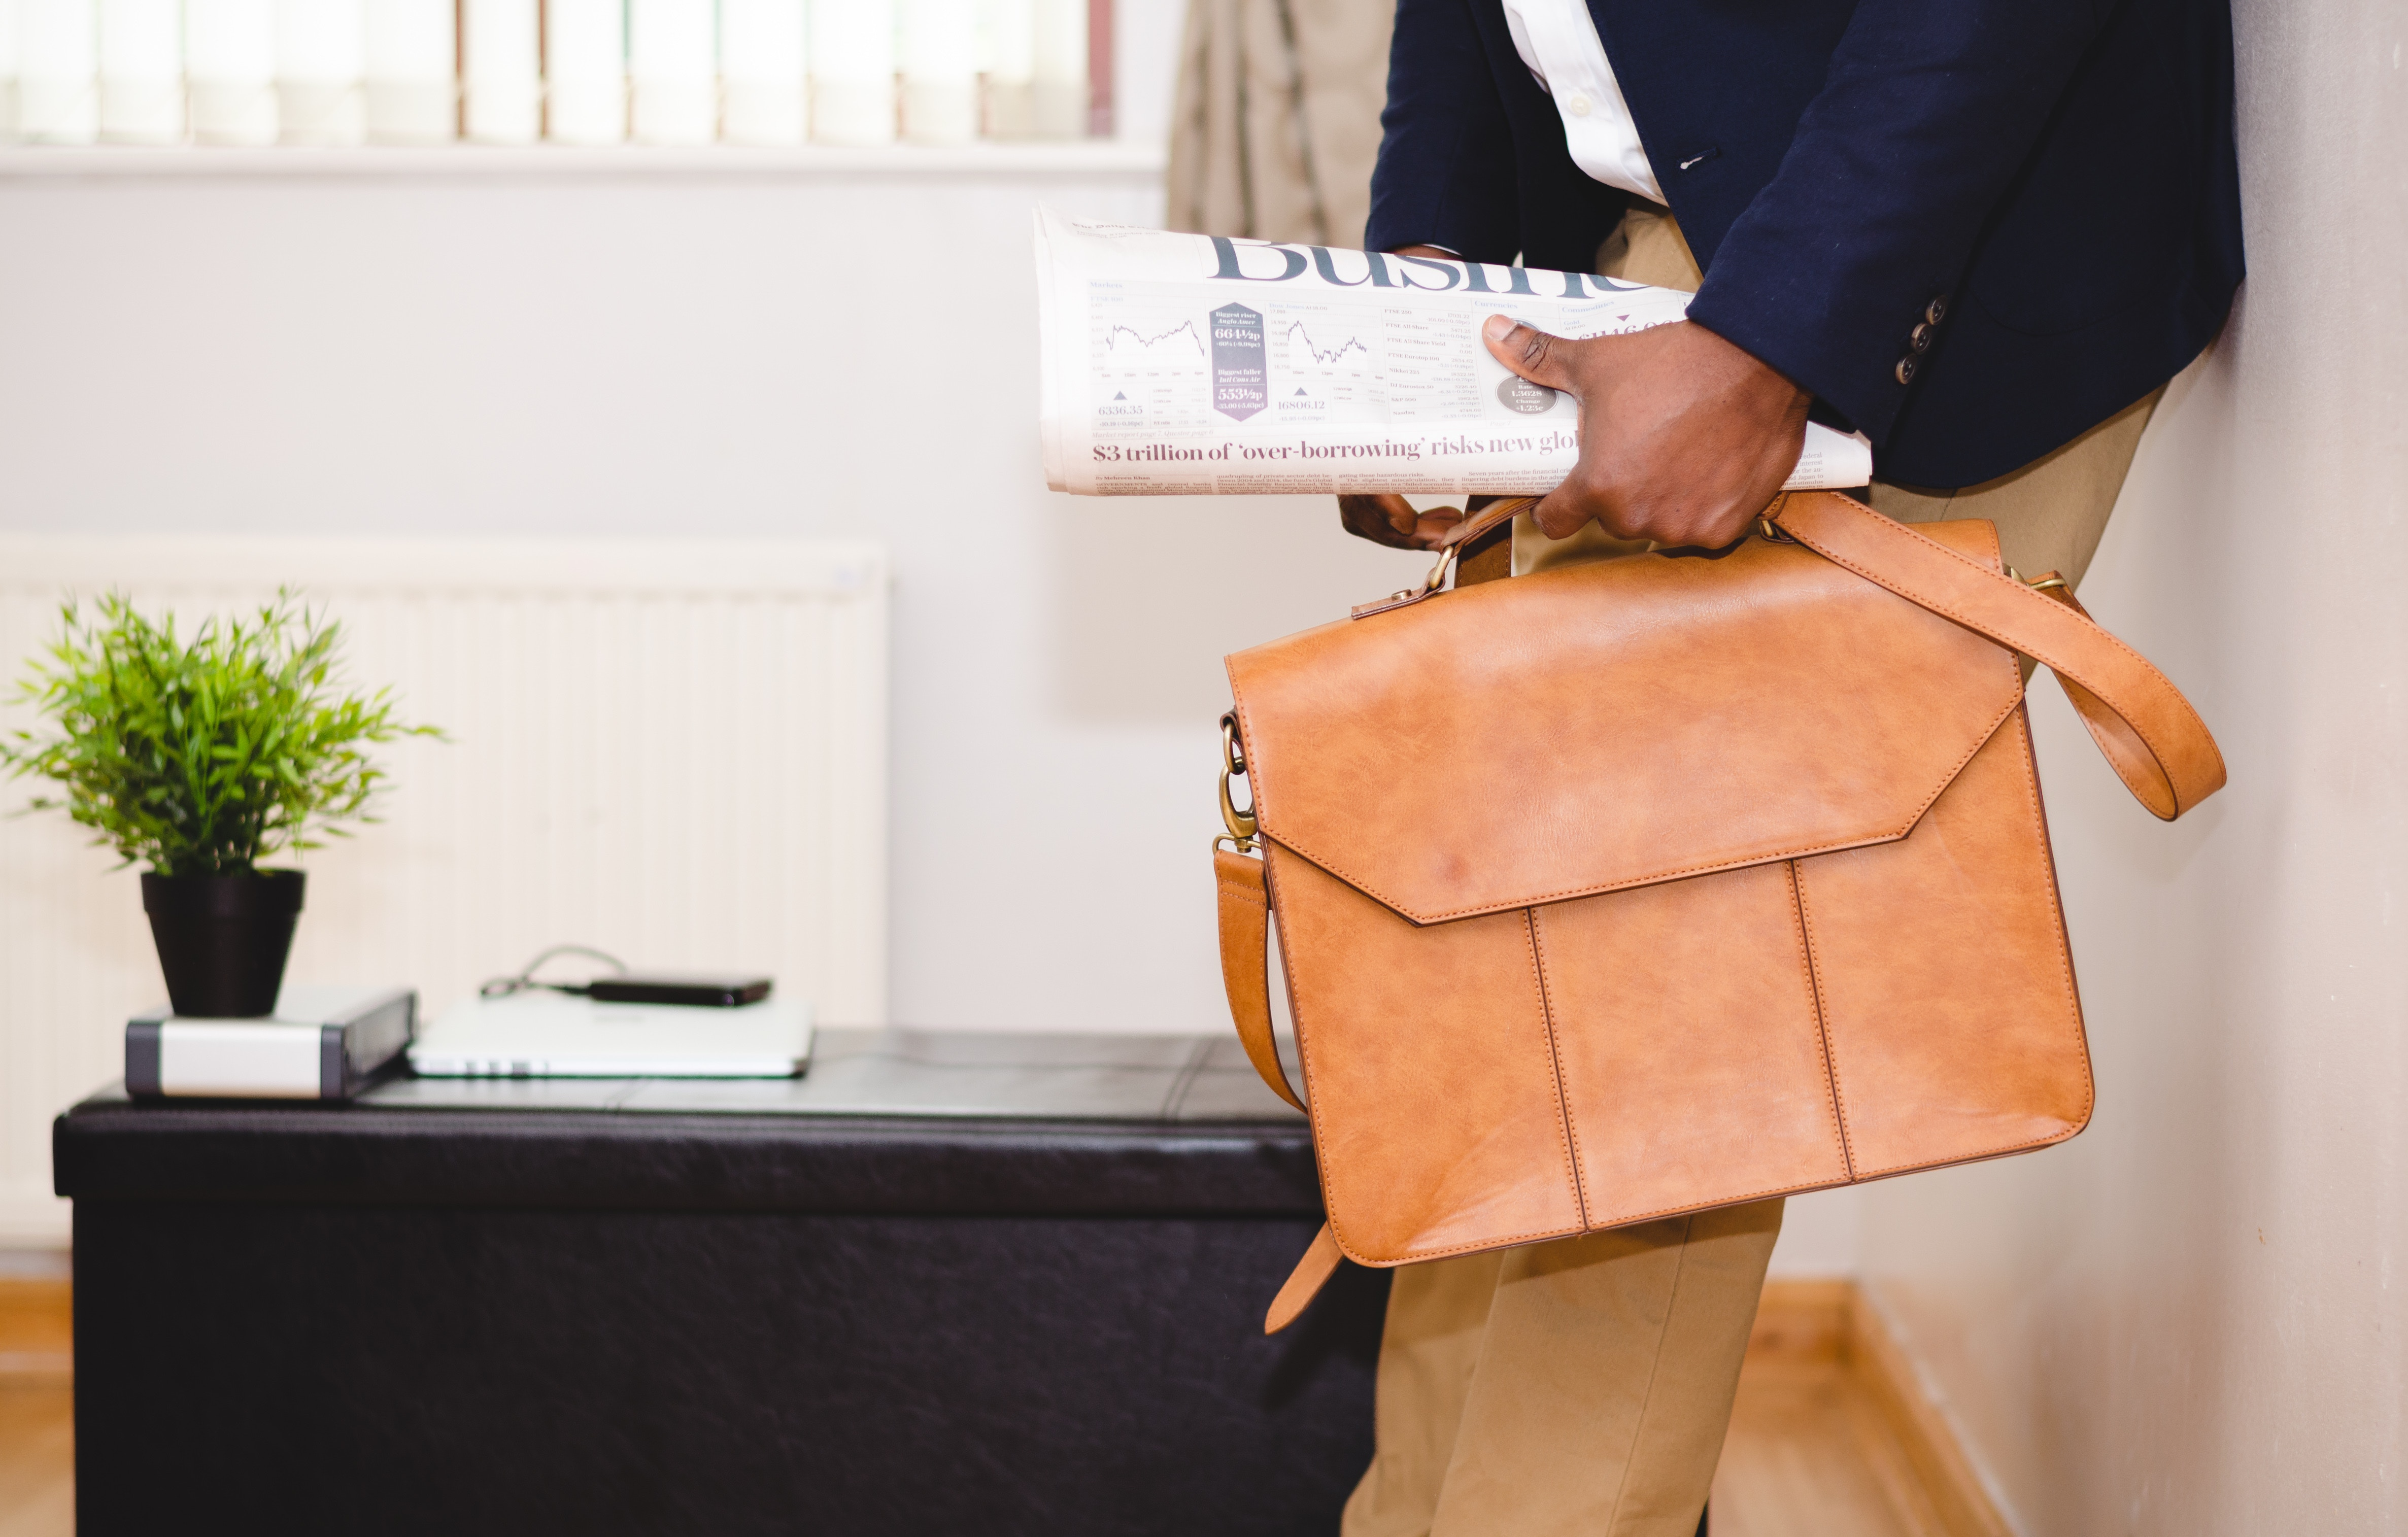 What to Bring On Your First Day of Work